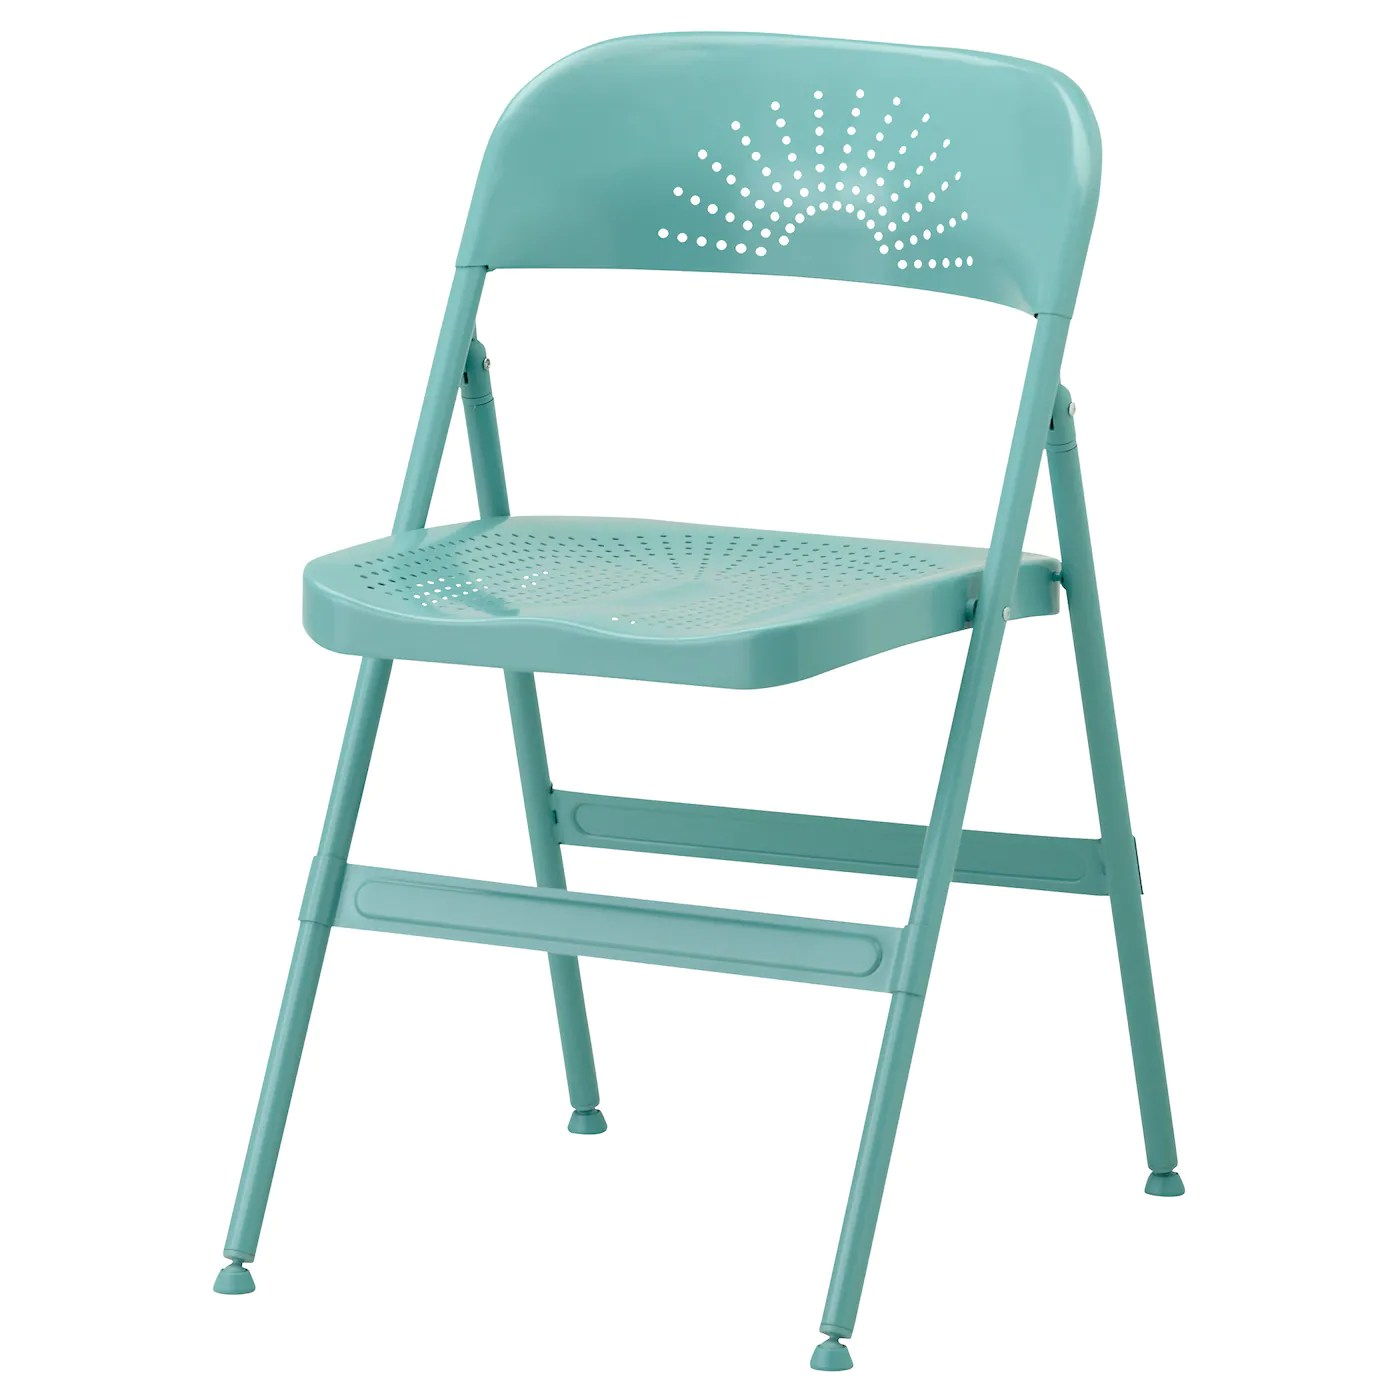 Chairs For Less Frode Folding Chair Turquoise Ikea